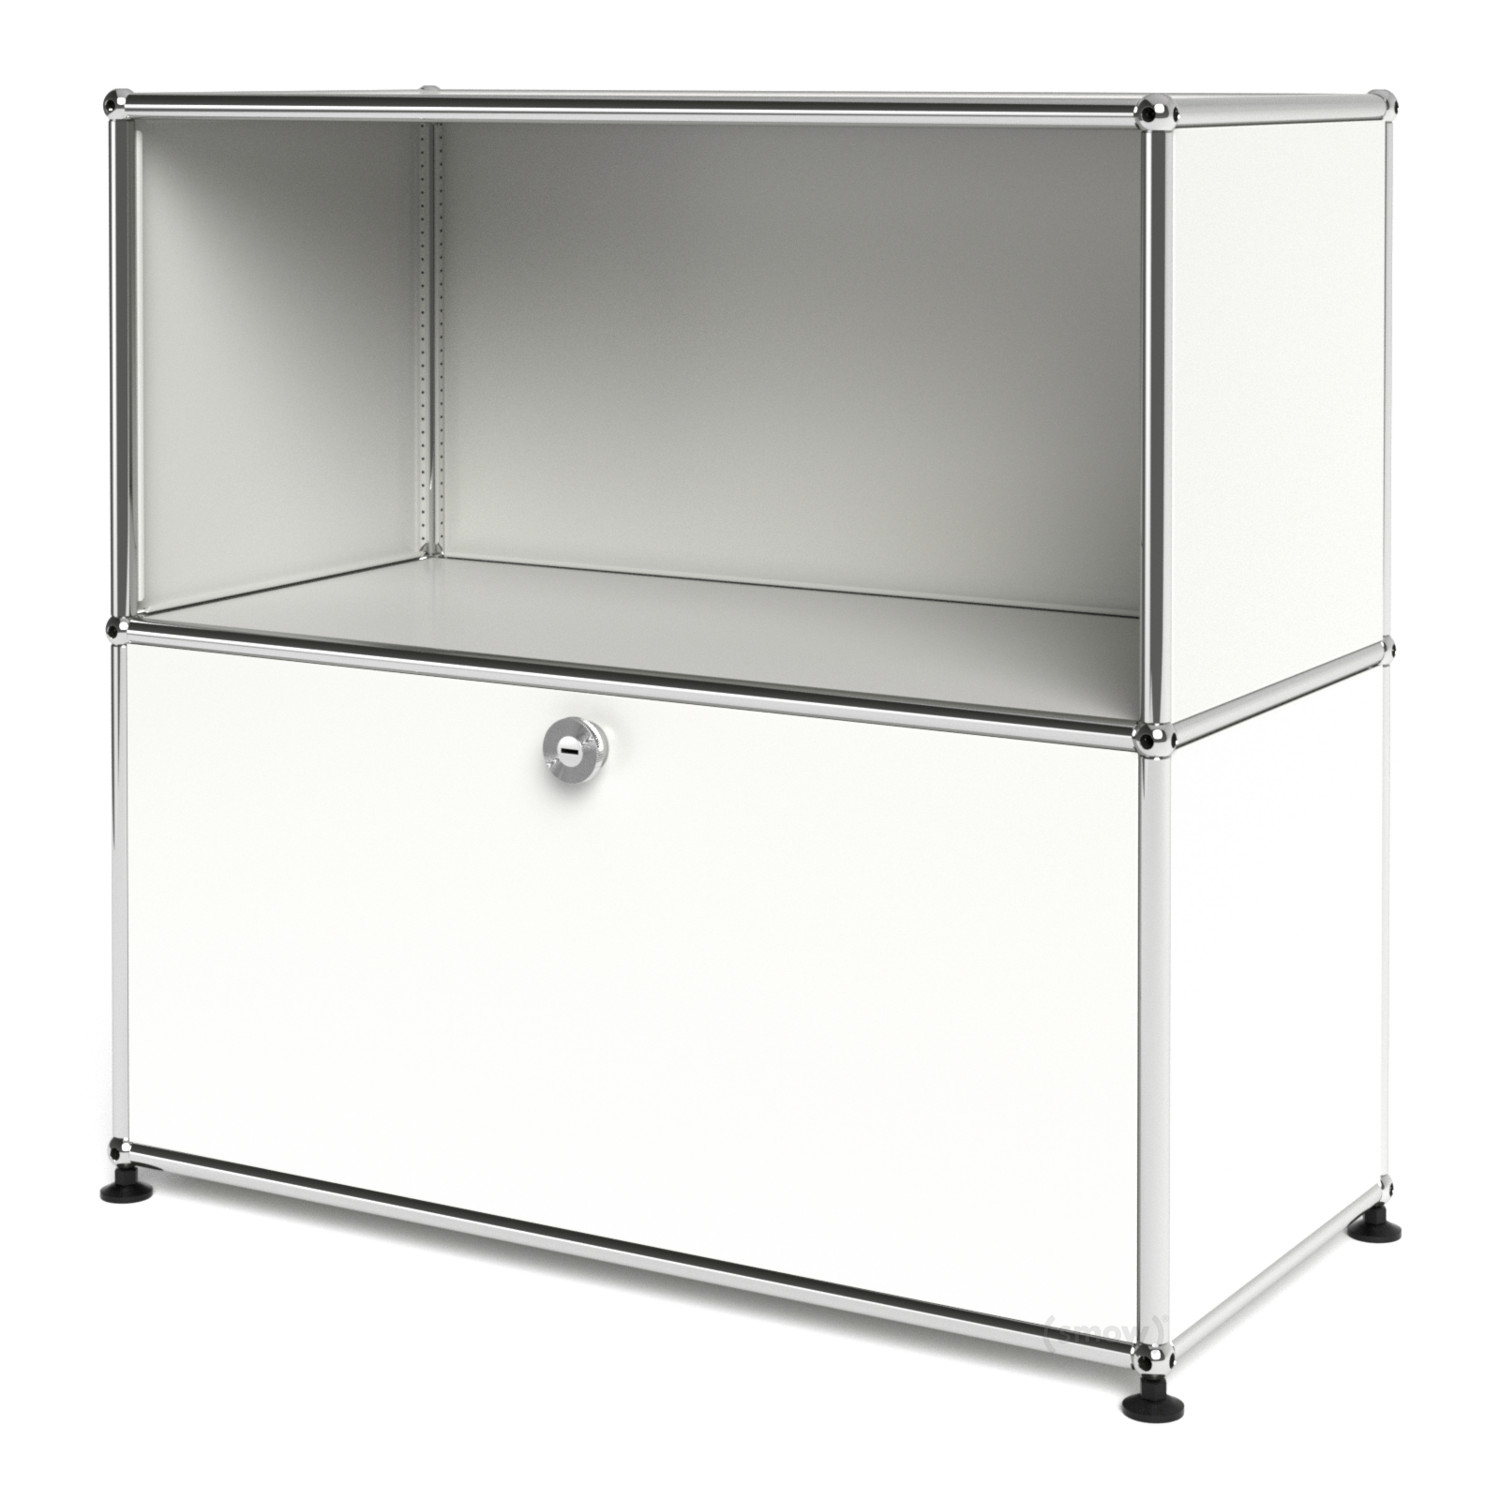 usm haller sideboard m with 1 drop down door by fritz. Black Bedroom Furniture Sets. Home Design Ideas